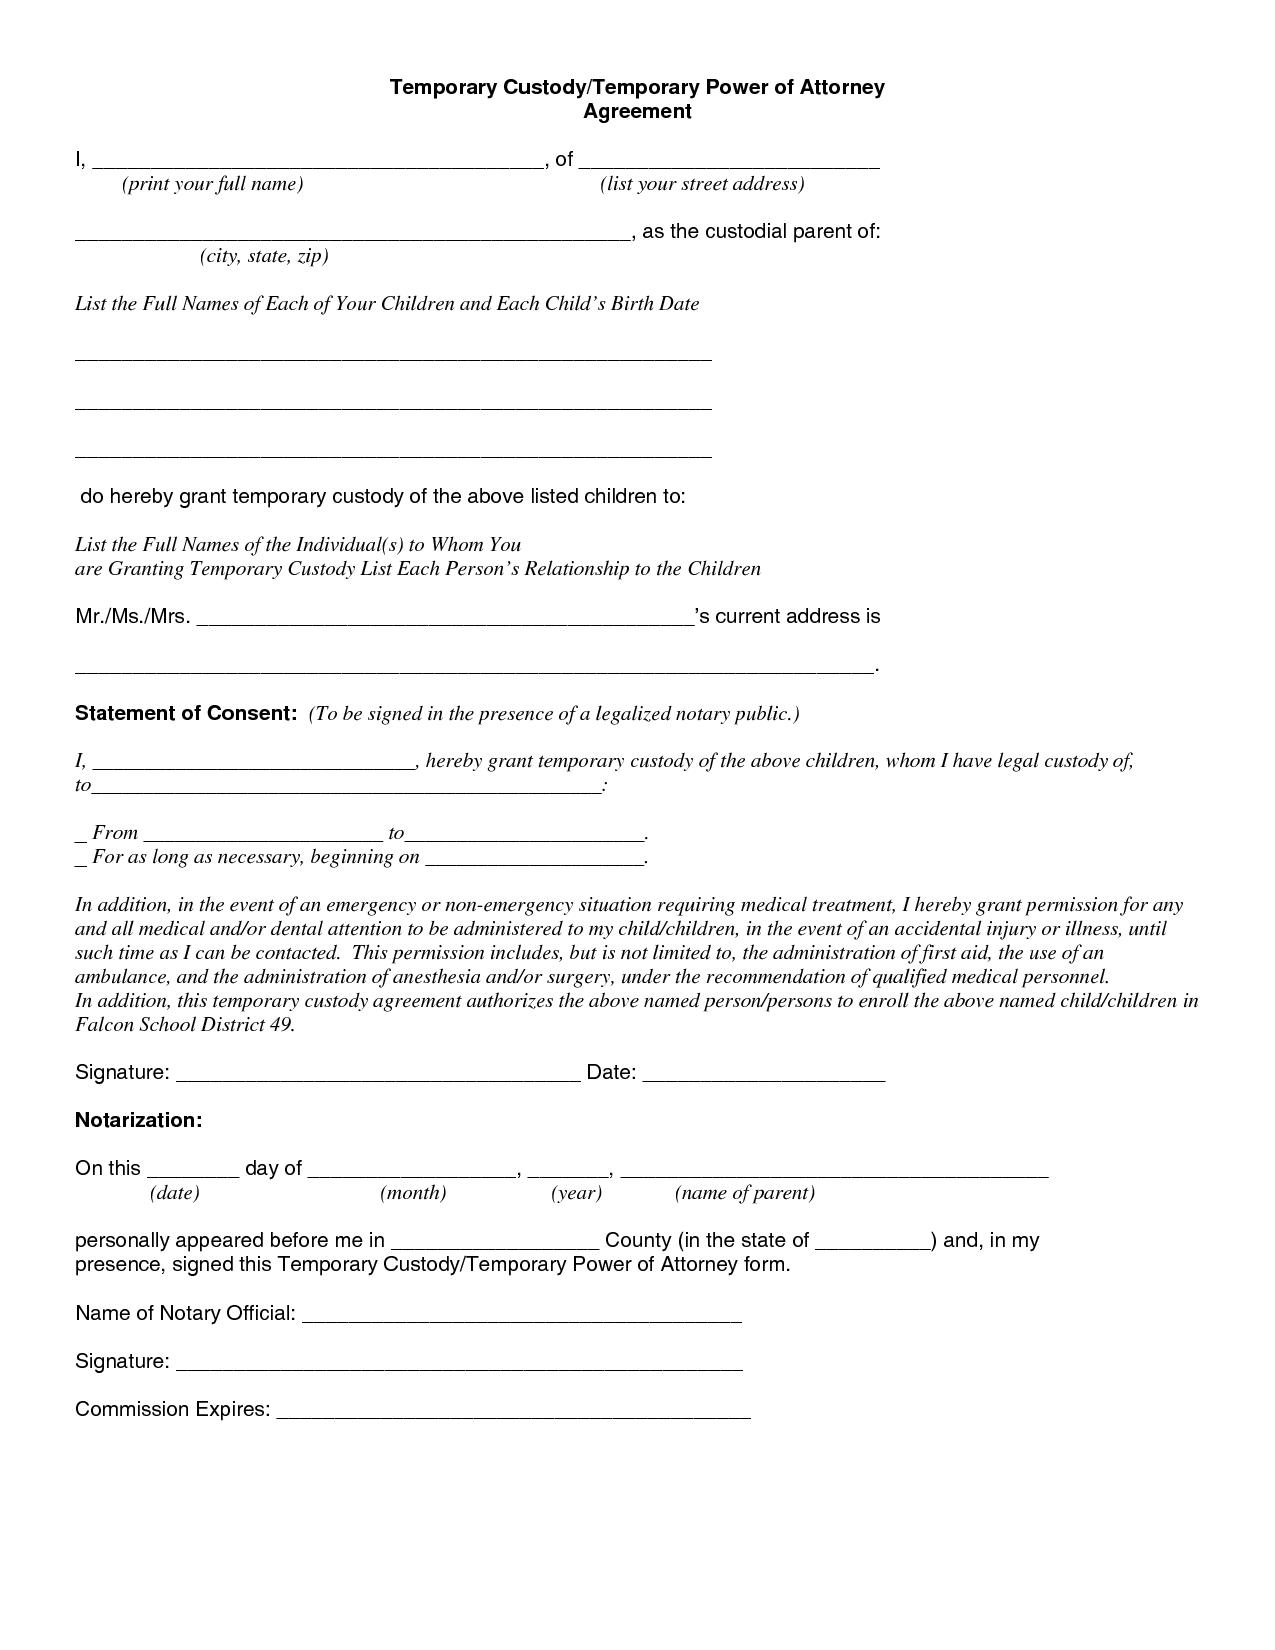 Temporary Custody Letter Template - Beautiful Parent Child Contract Templates Free Download